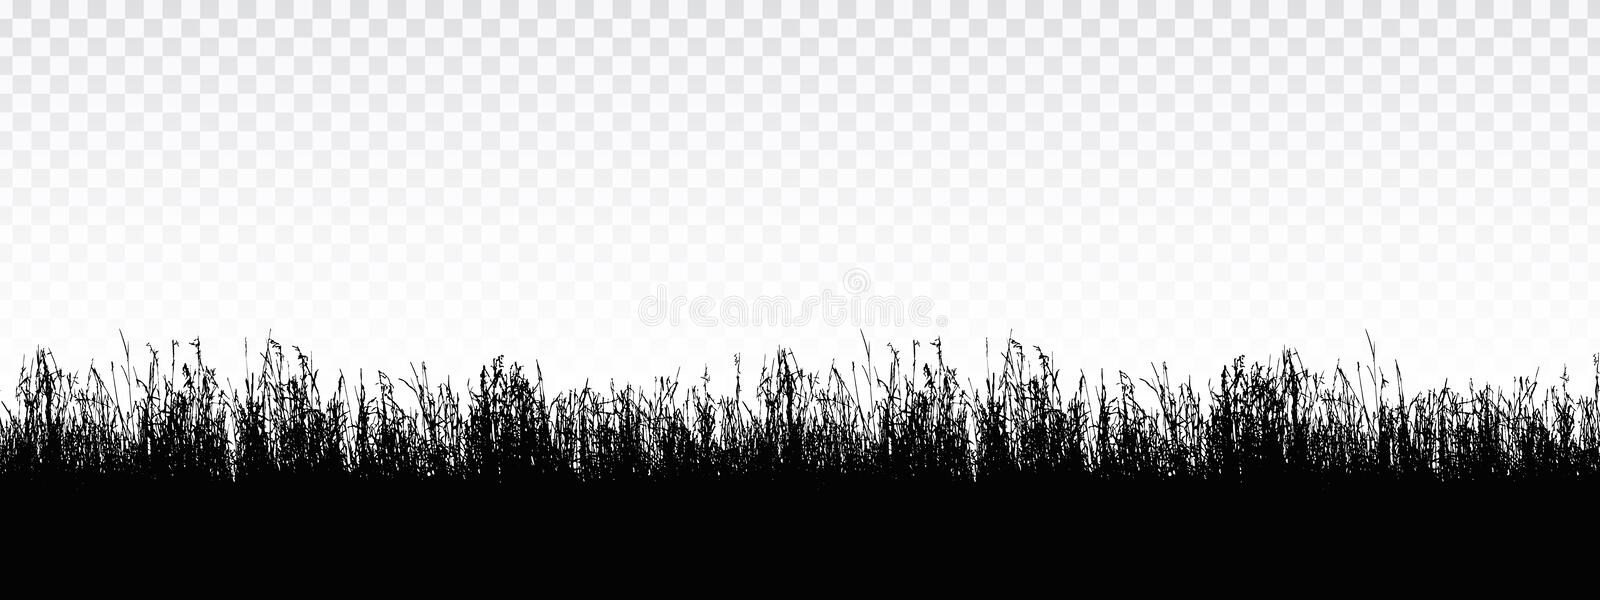 Seamless realistic illustration of a grass stalk or lawn, isolated on a transparent background, vector. Seamless realistic illustration of a grass stalk or lawn vector illustration